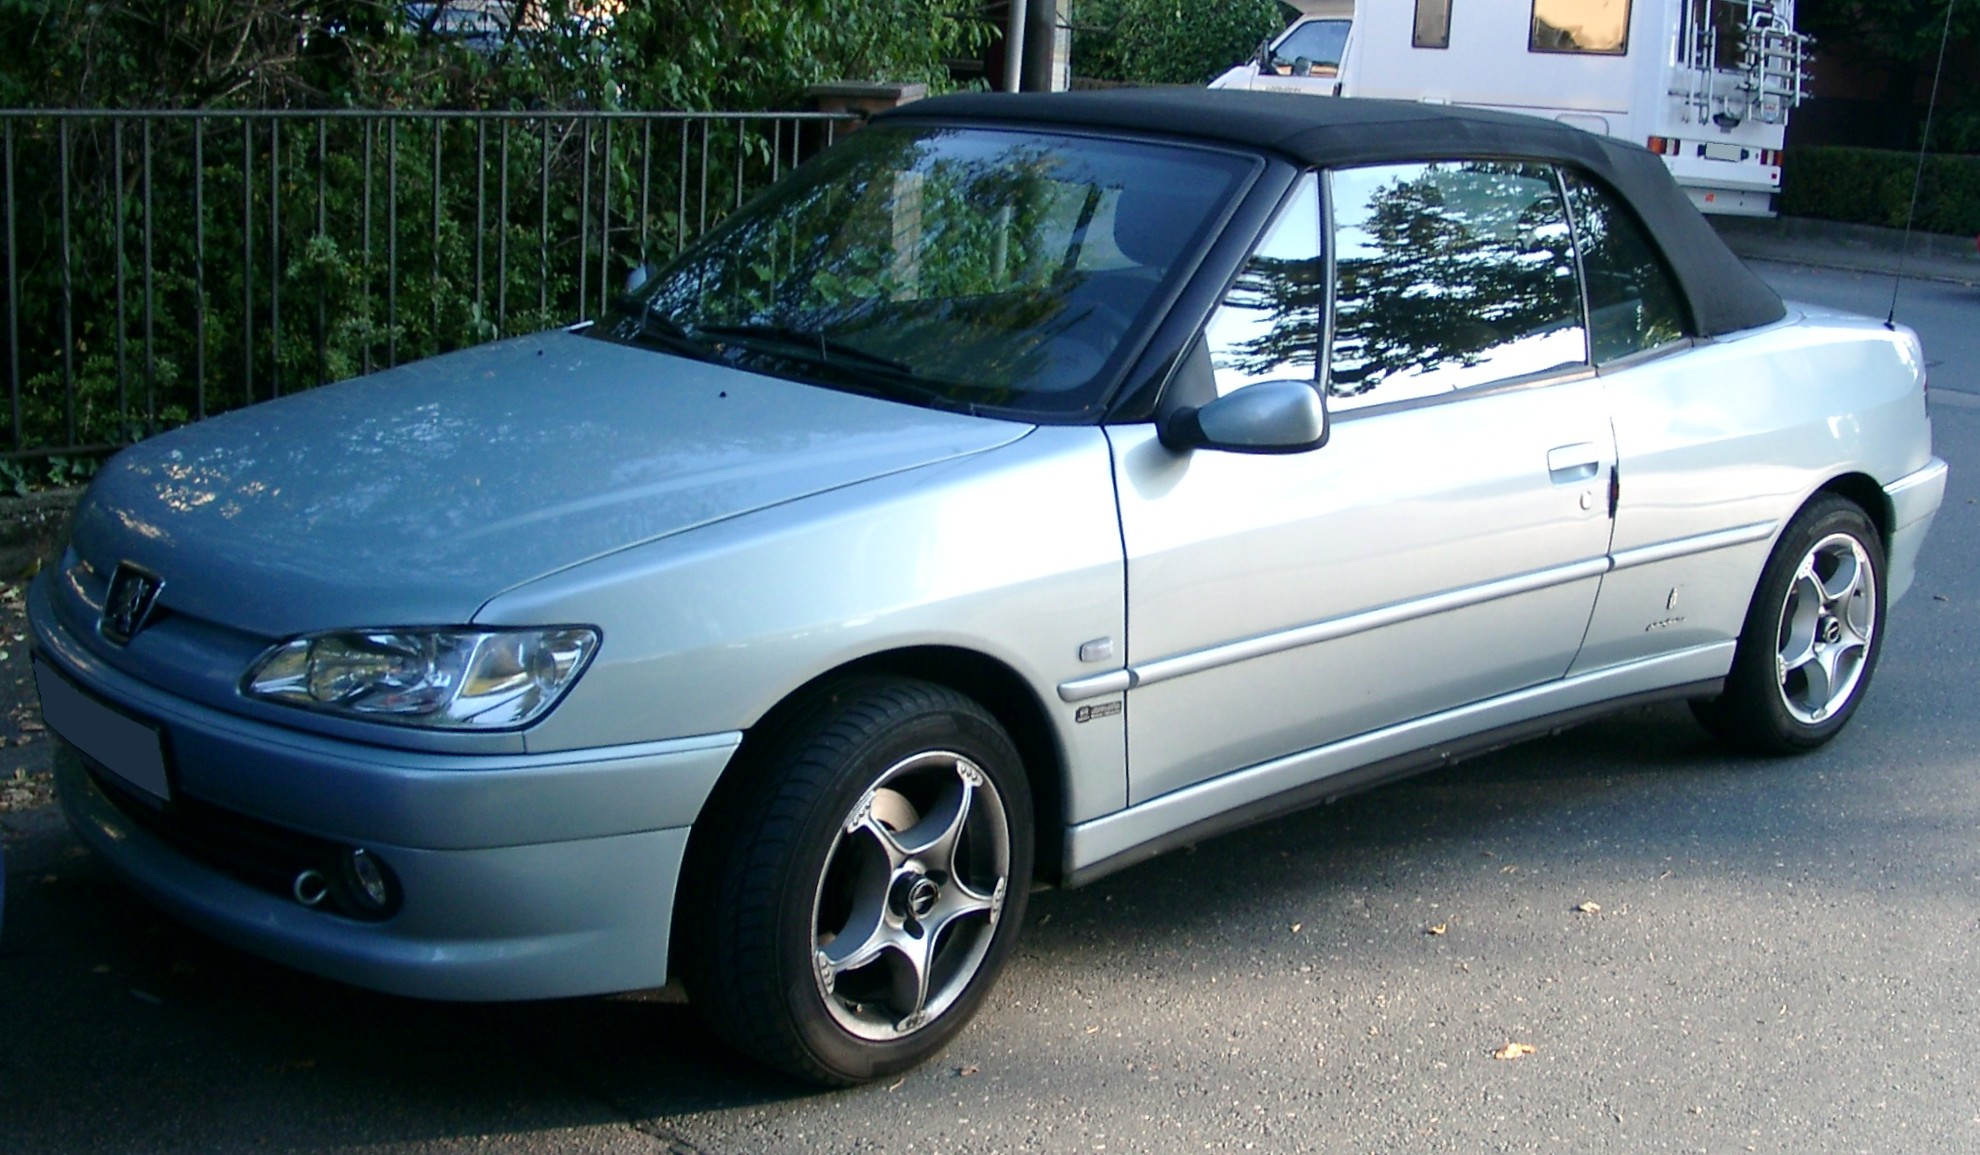 file peugeot 306 cabrio front wikimedia commons. Black Bedroom Furniture Sets. Home Design Ideas